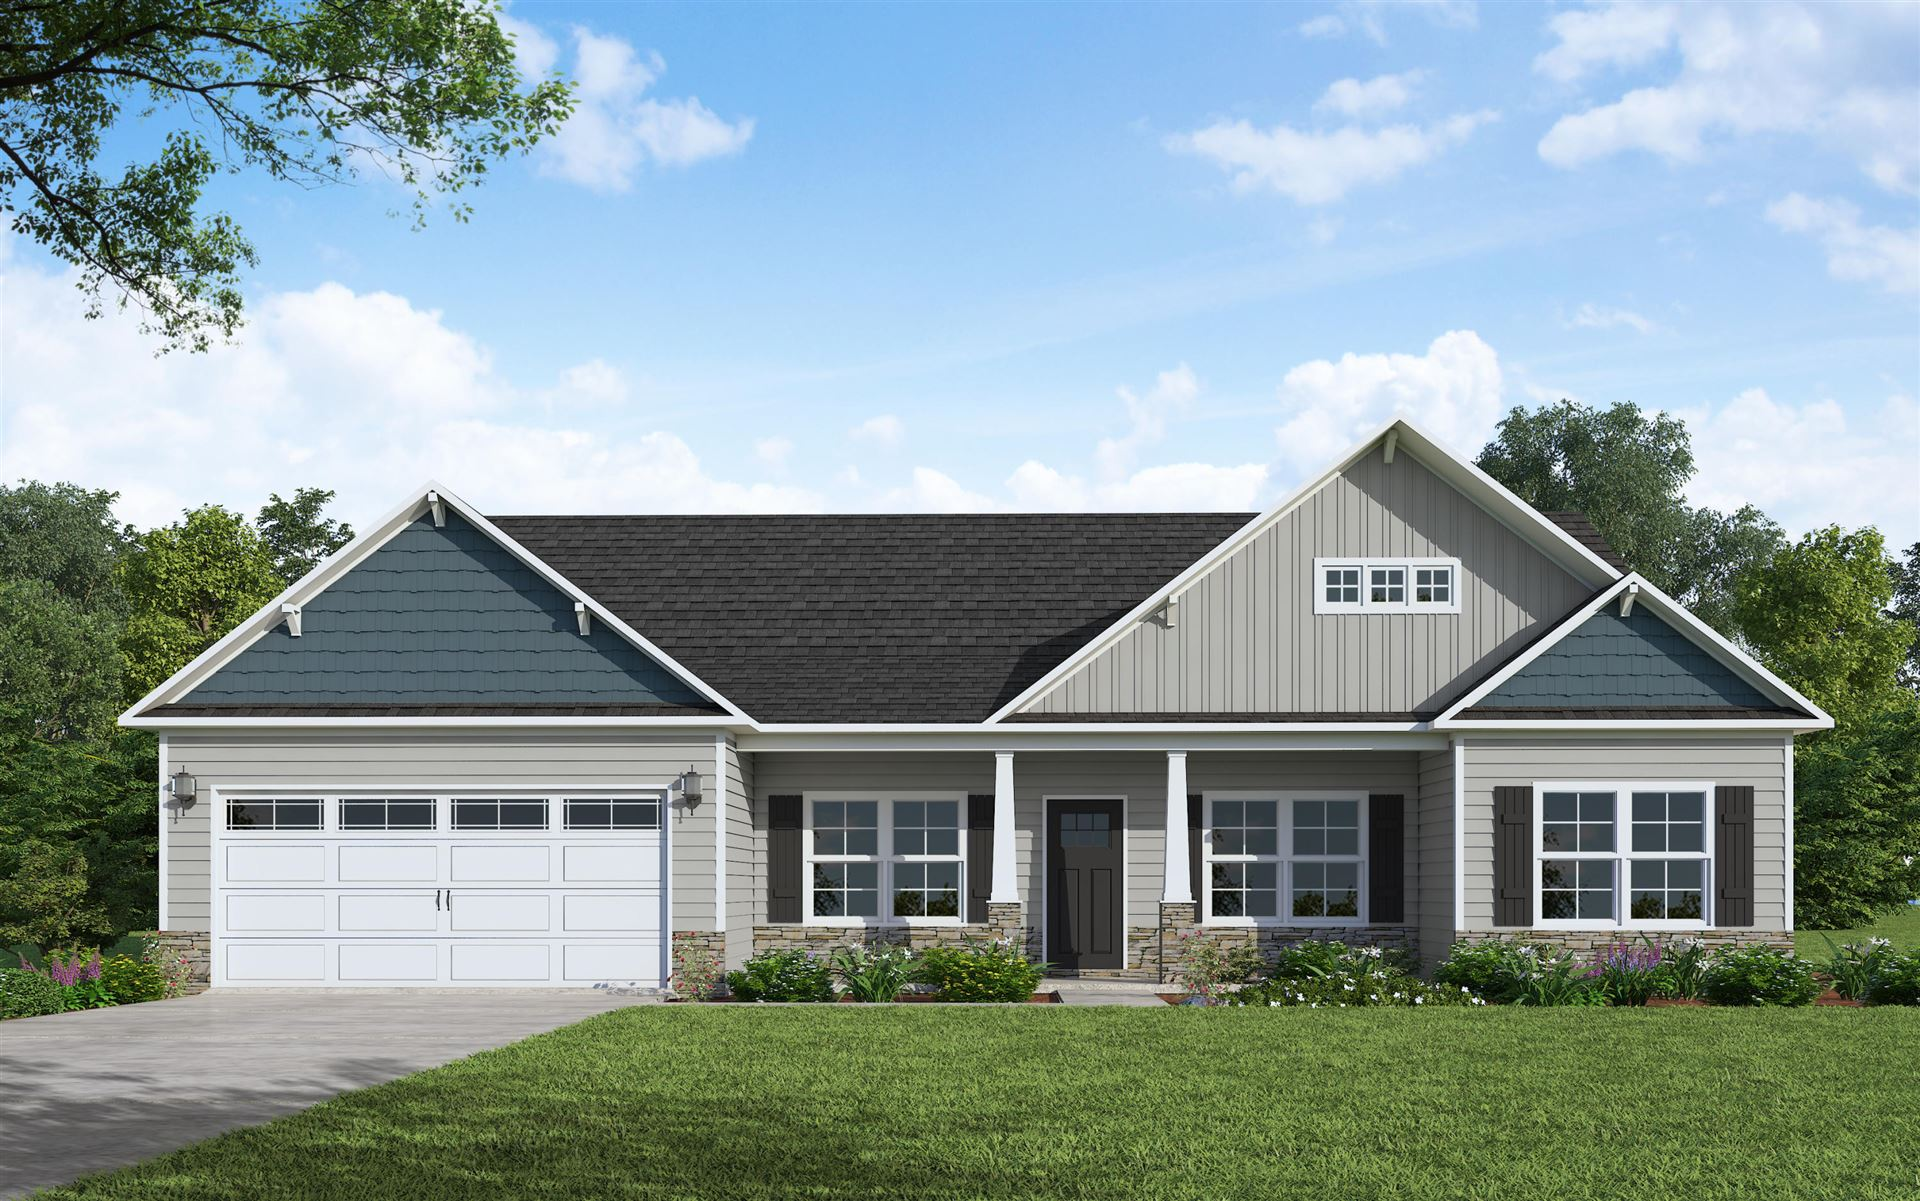 Photo for 105 Evergreen Forest Drive #273, Sneads Ferry, NC 28460 (MLS # 100269312)